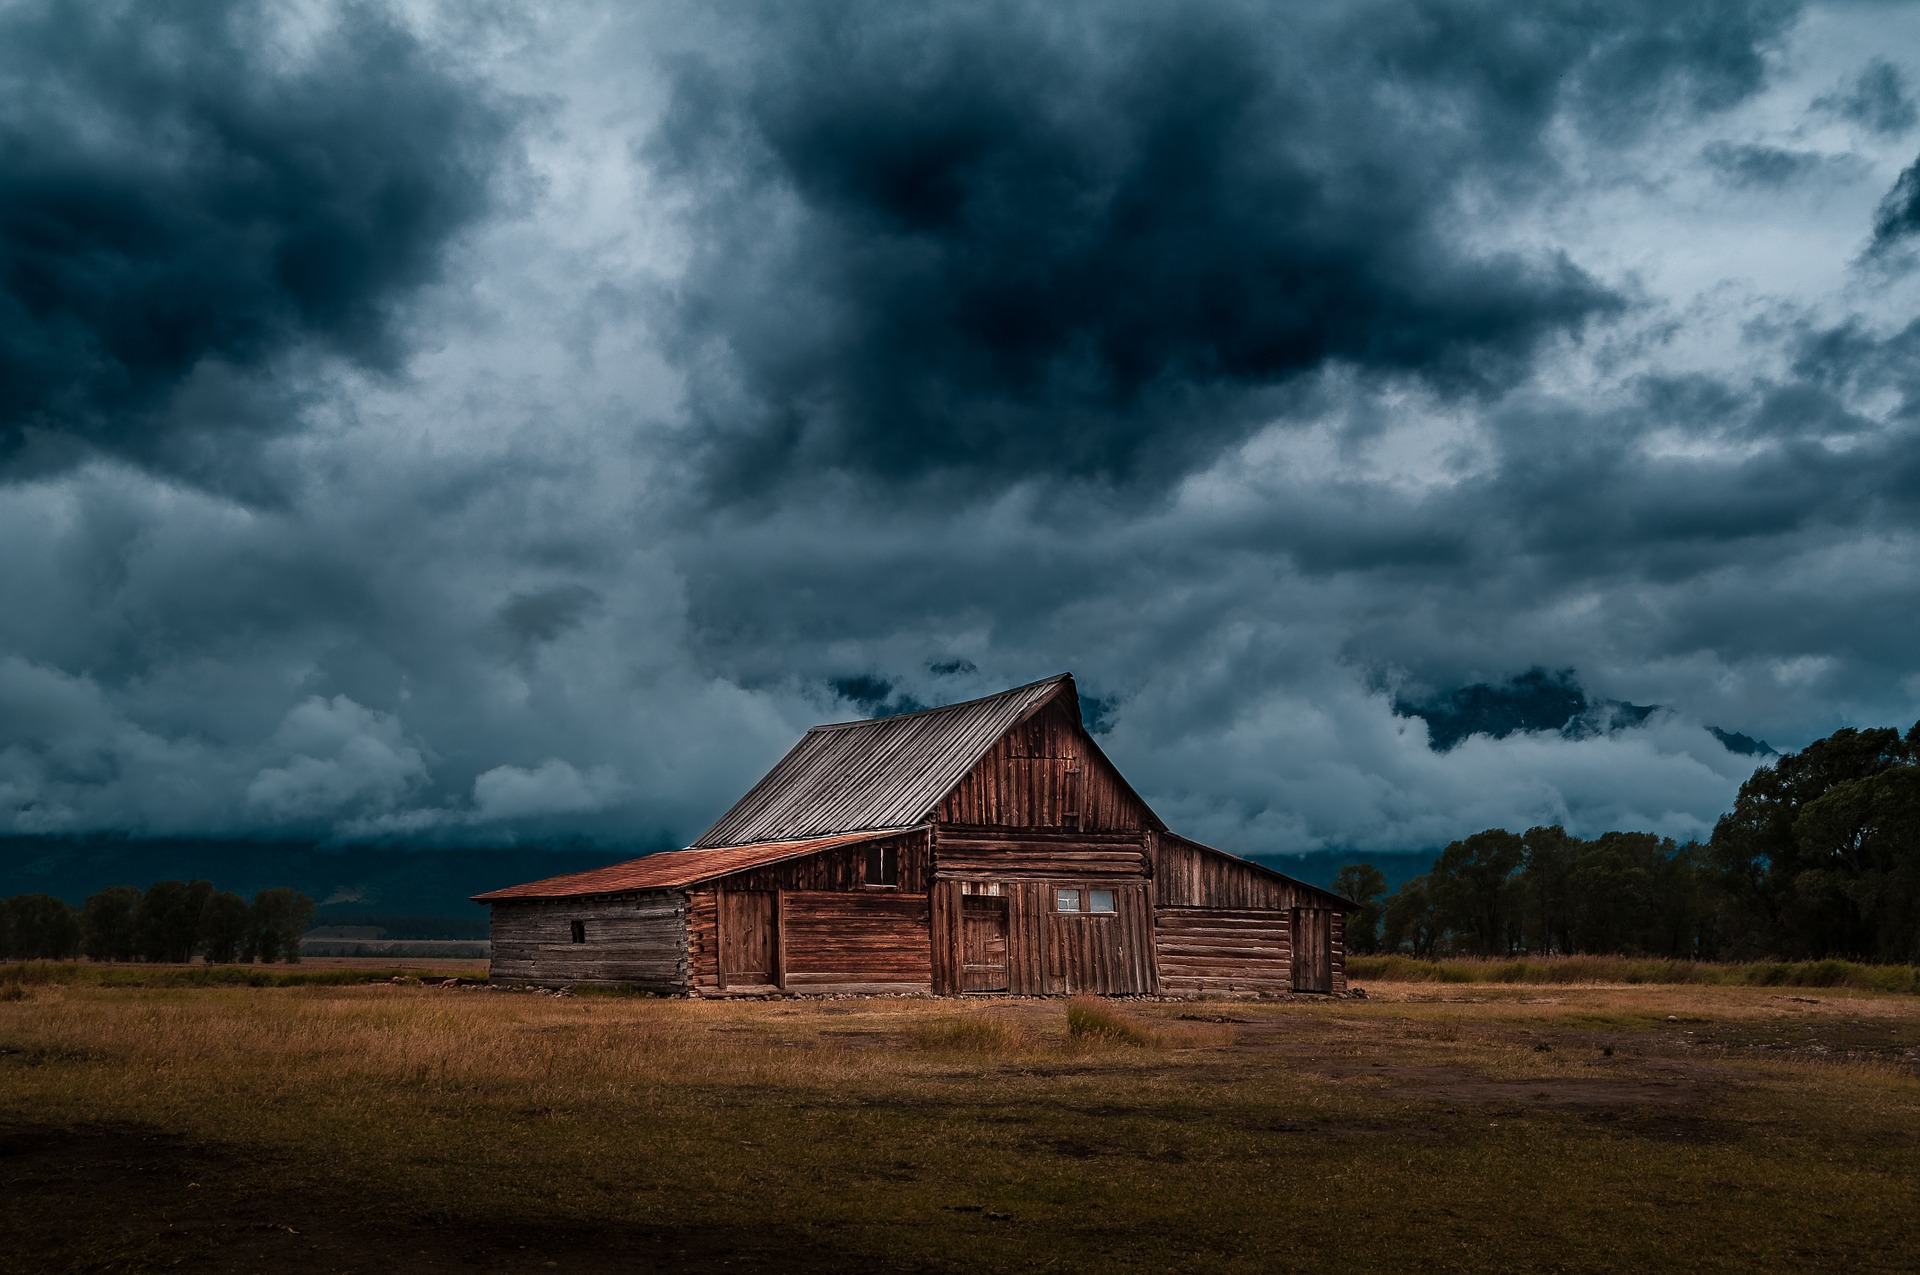 A cabin on a plain under clouds on a very dark day